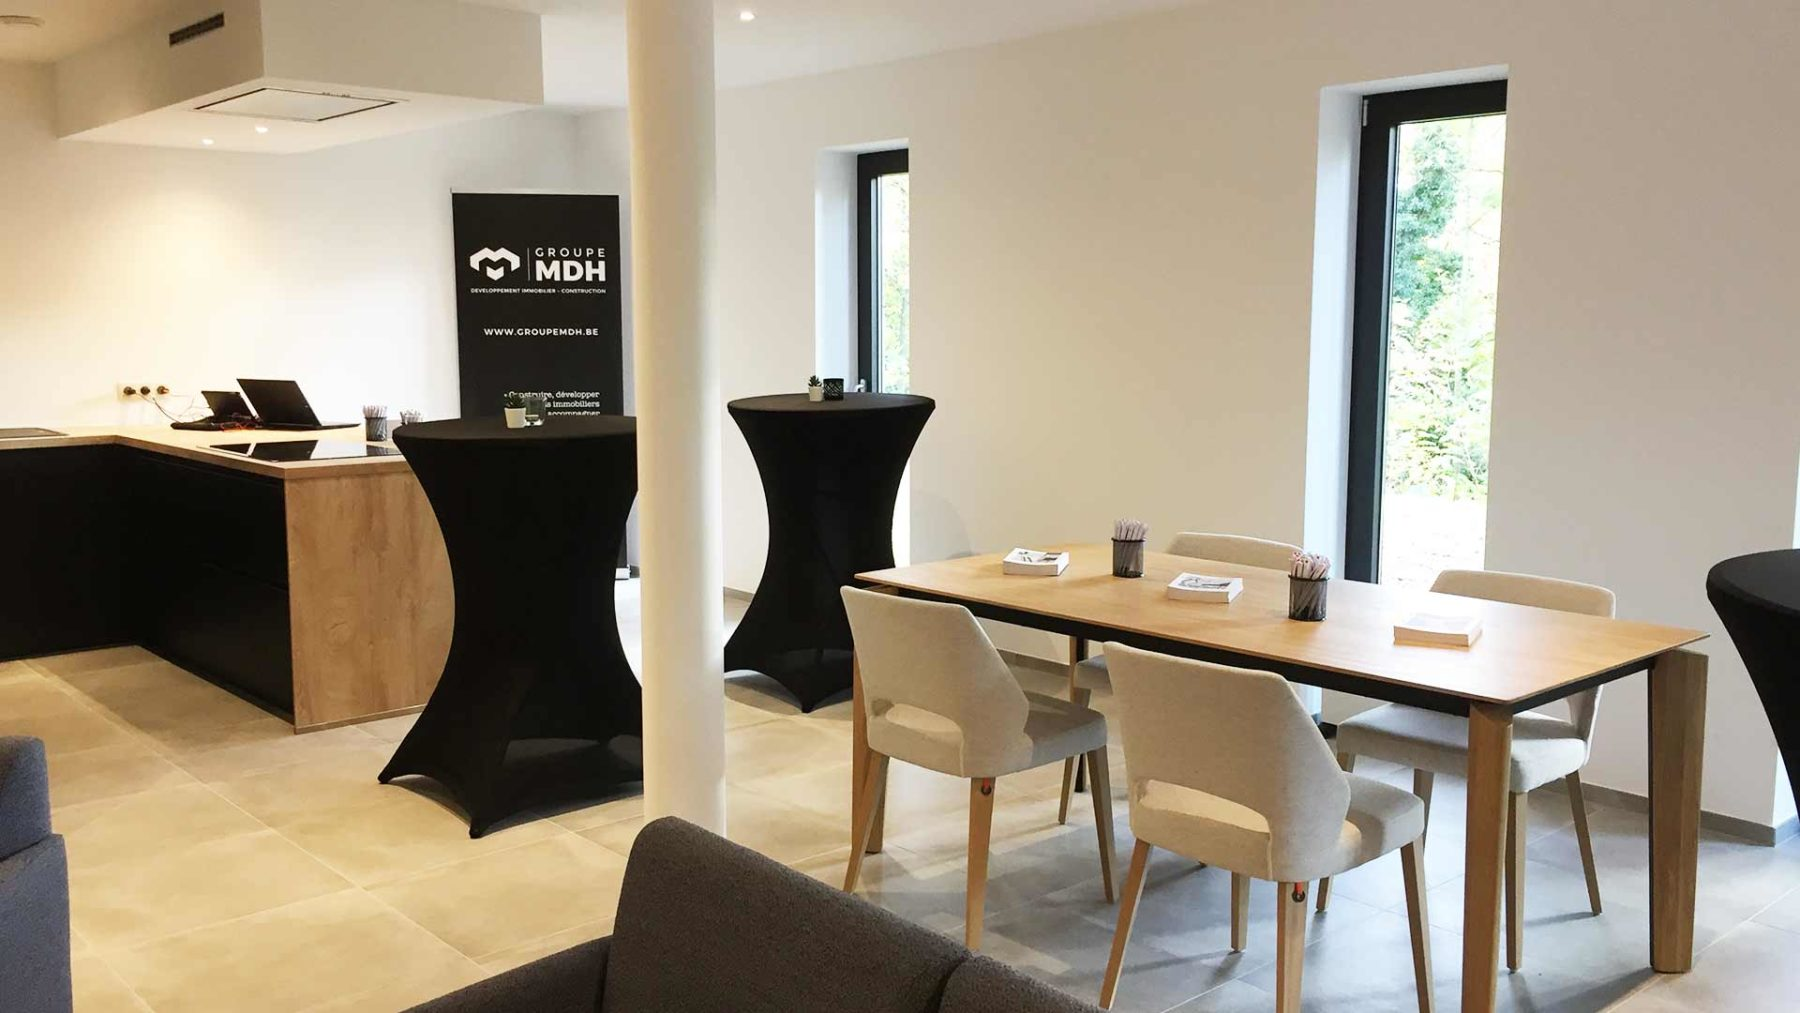 appartement neuf a vendre embourg groupemdh